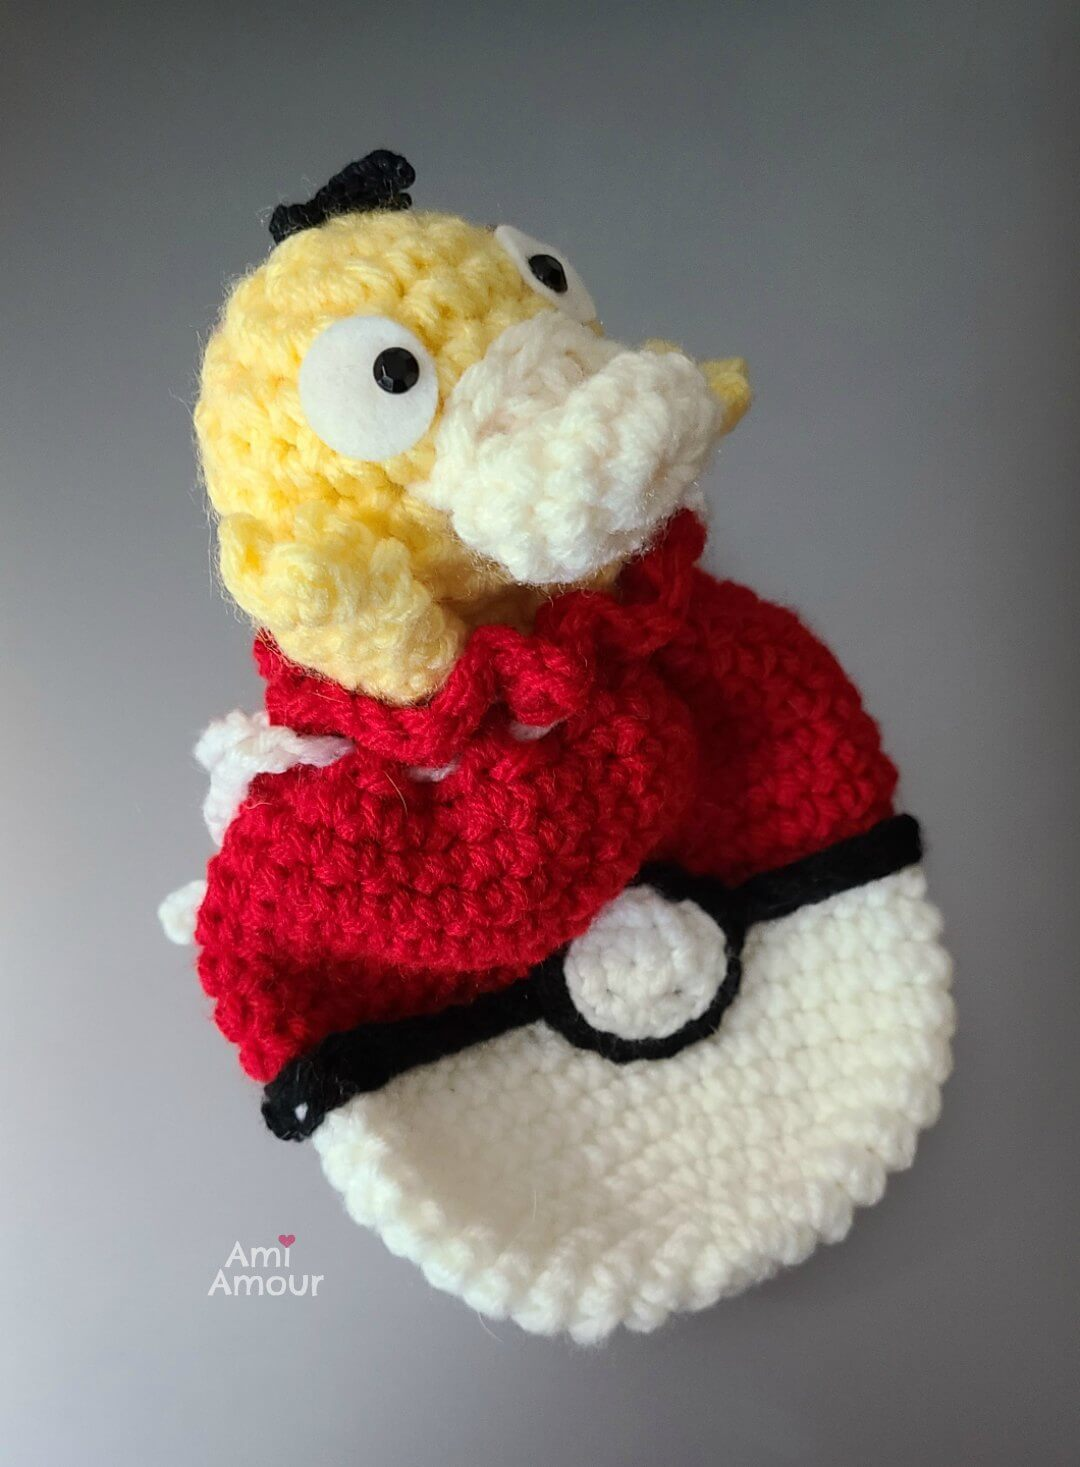 Psyduck stuck on Crochet Pokeball Bag - Free Crochet Pattern